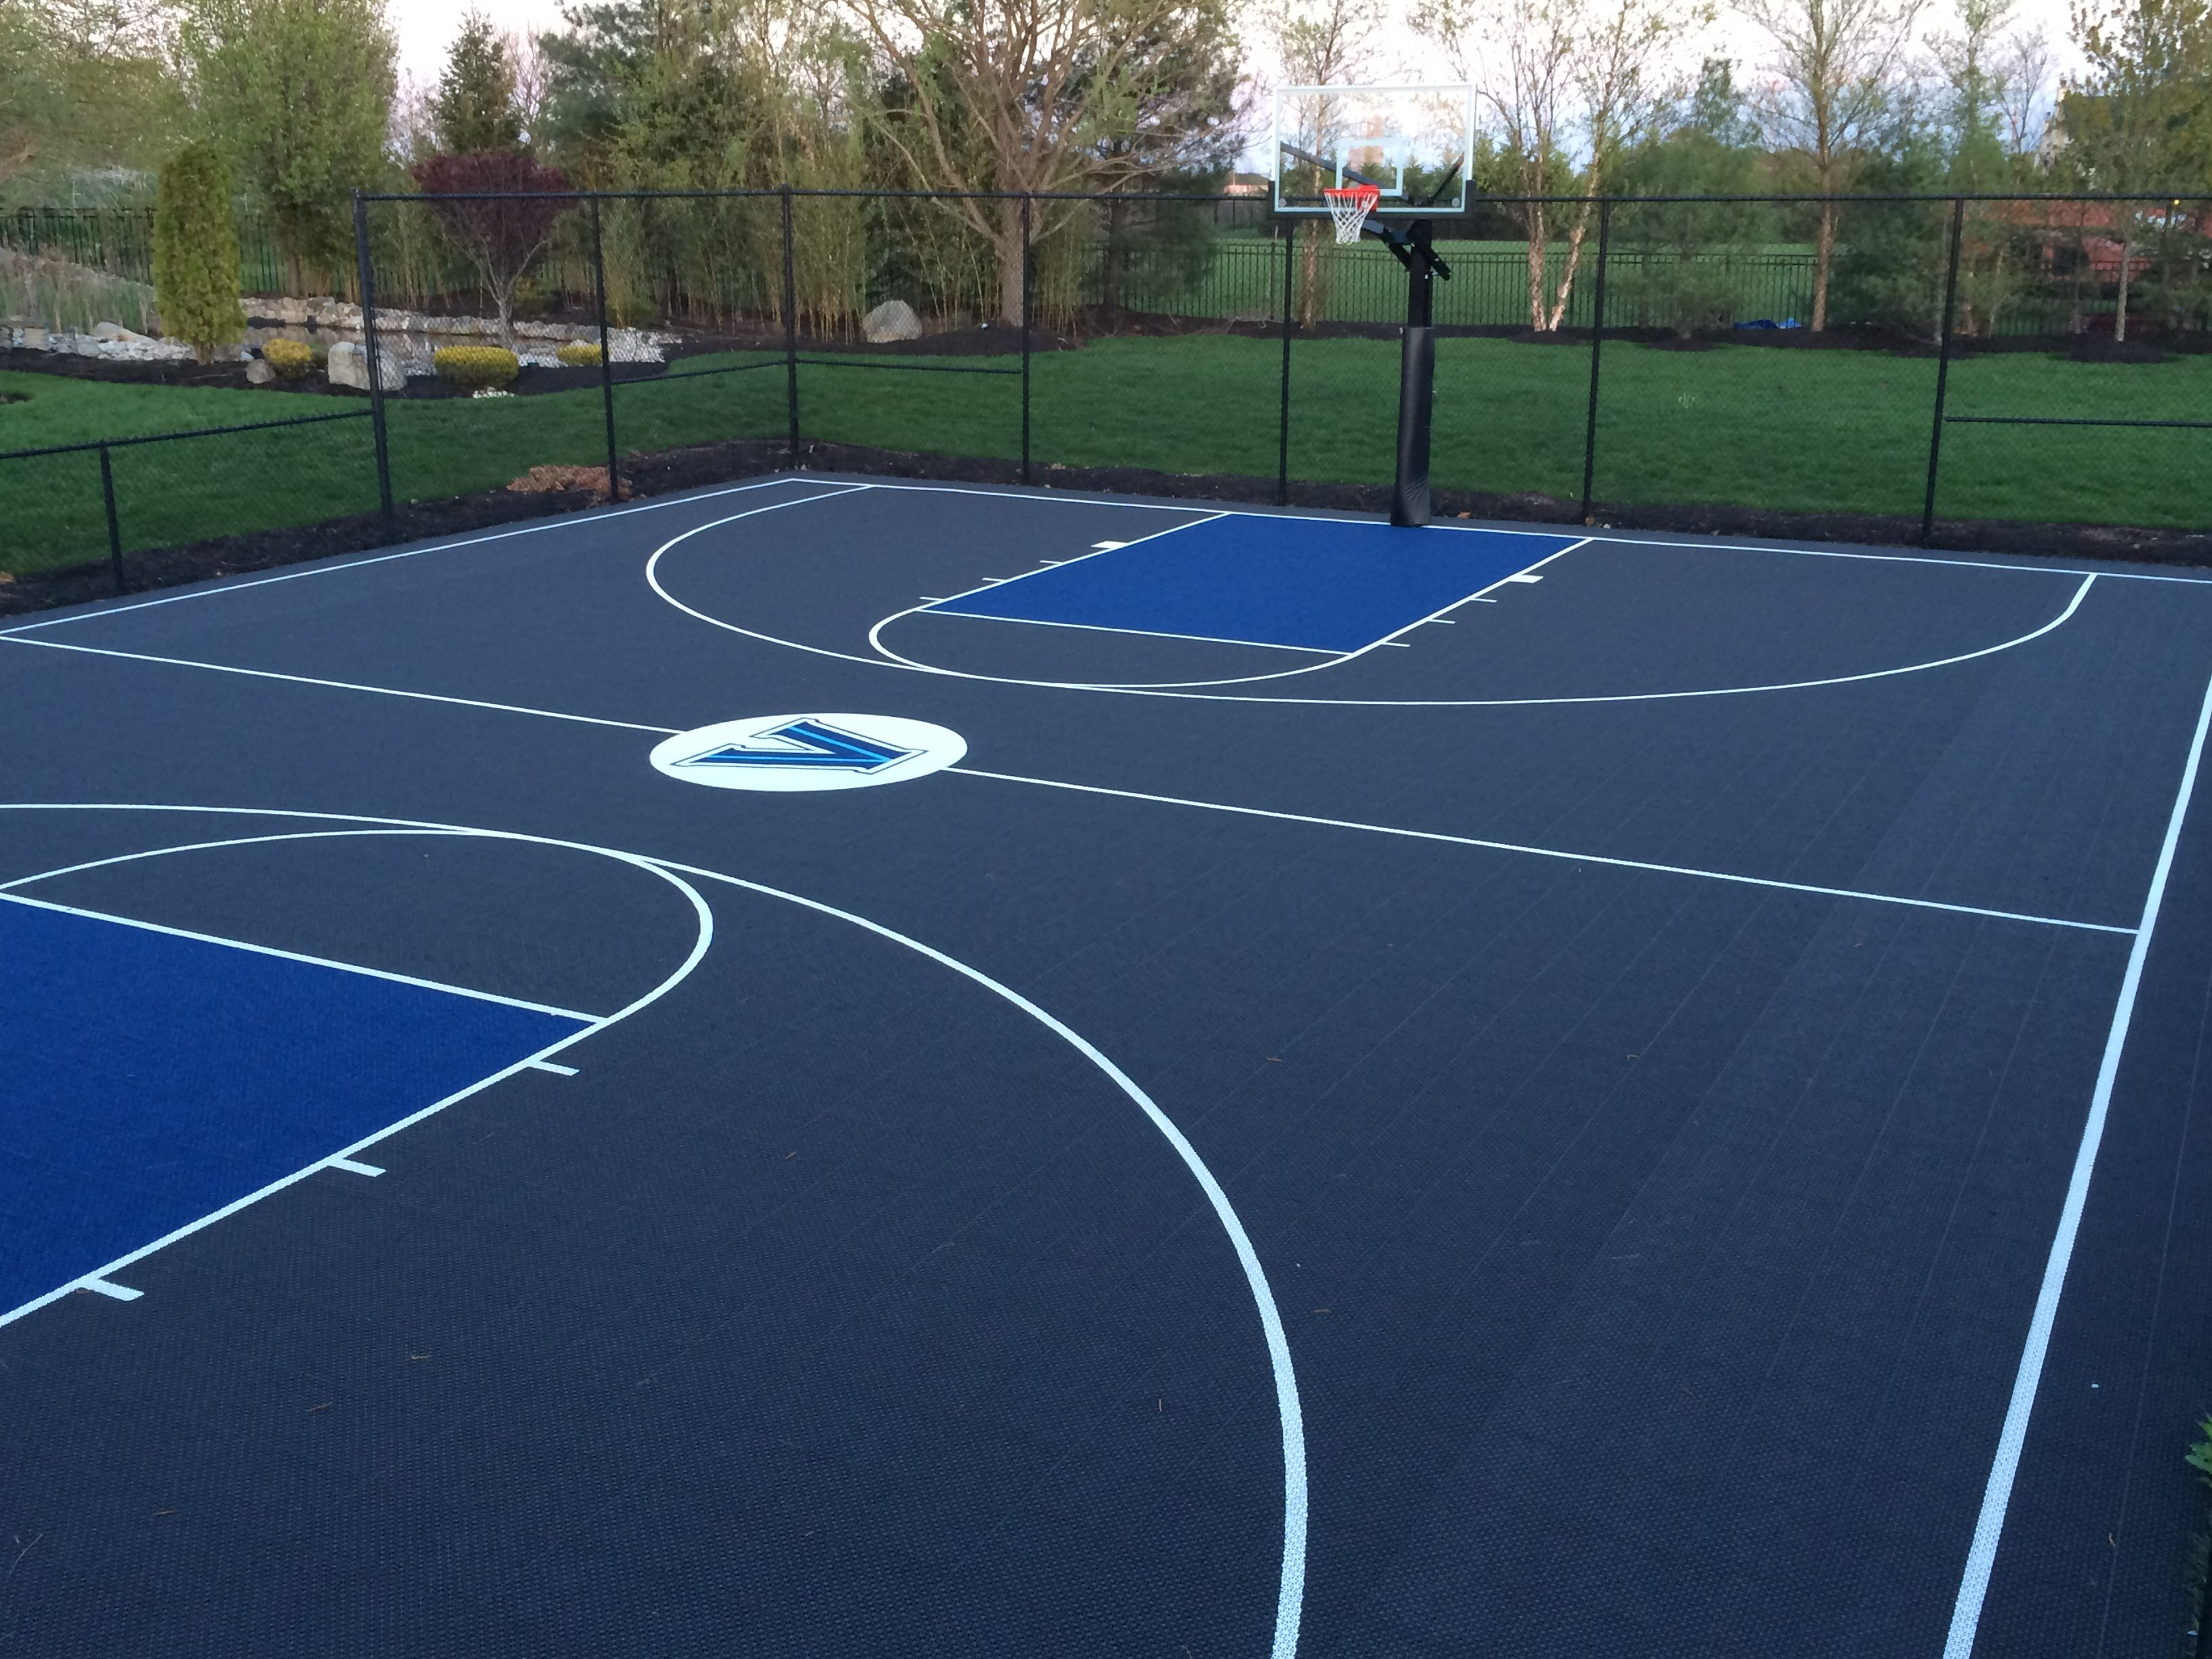 Full Sized Basketball Court Built In Moorestown Nj There Is A Small Turf Field And Batting Cage Attached On The Opposite Side Tenis Conversiones